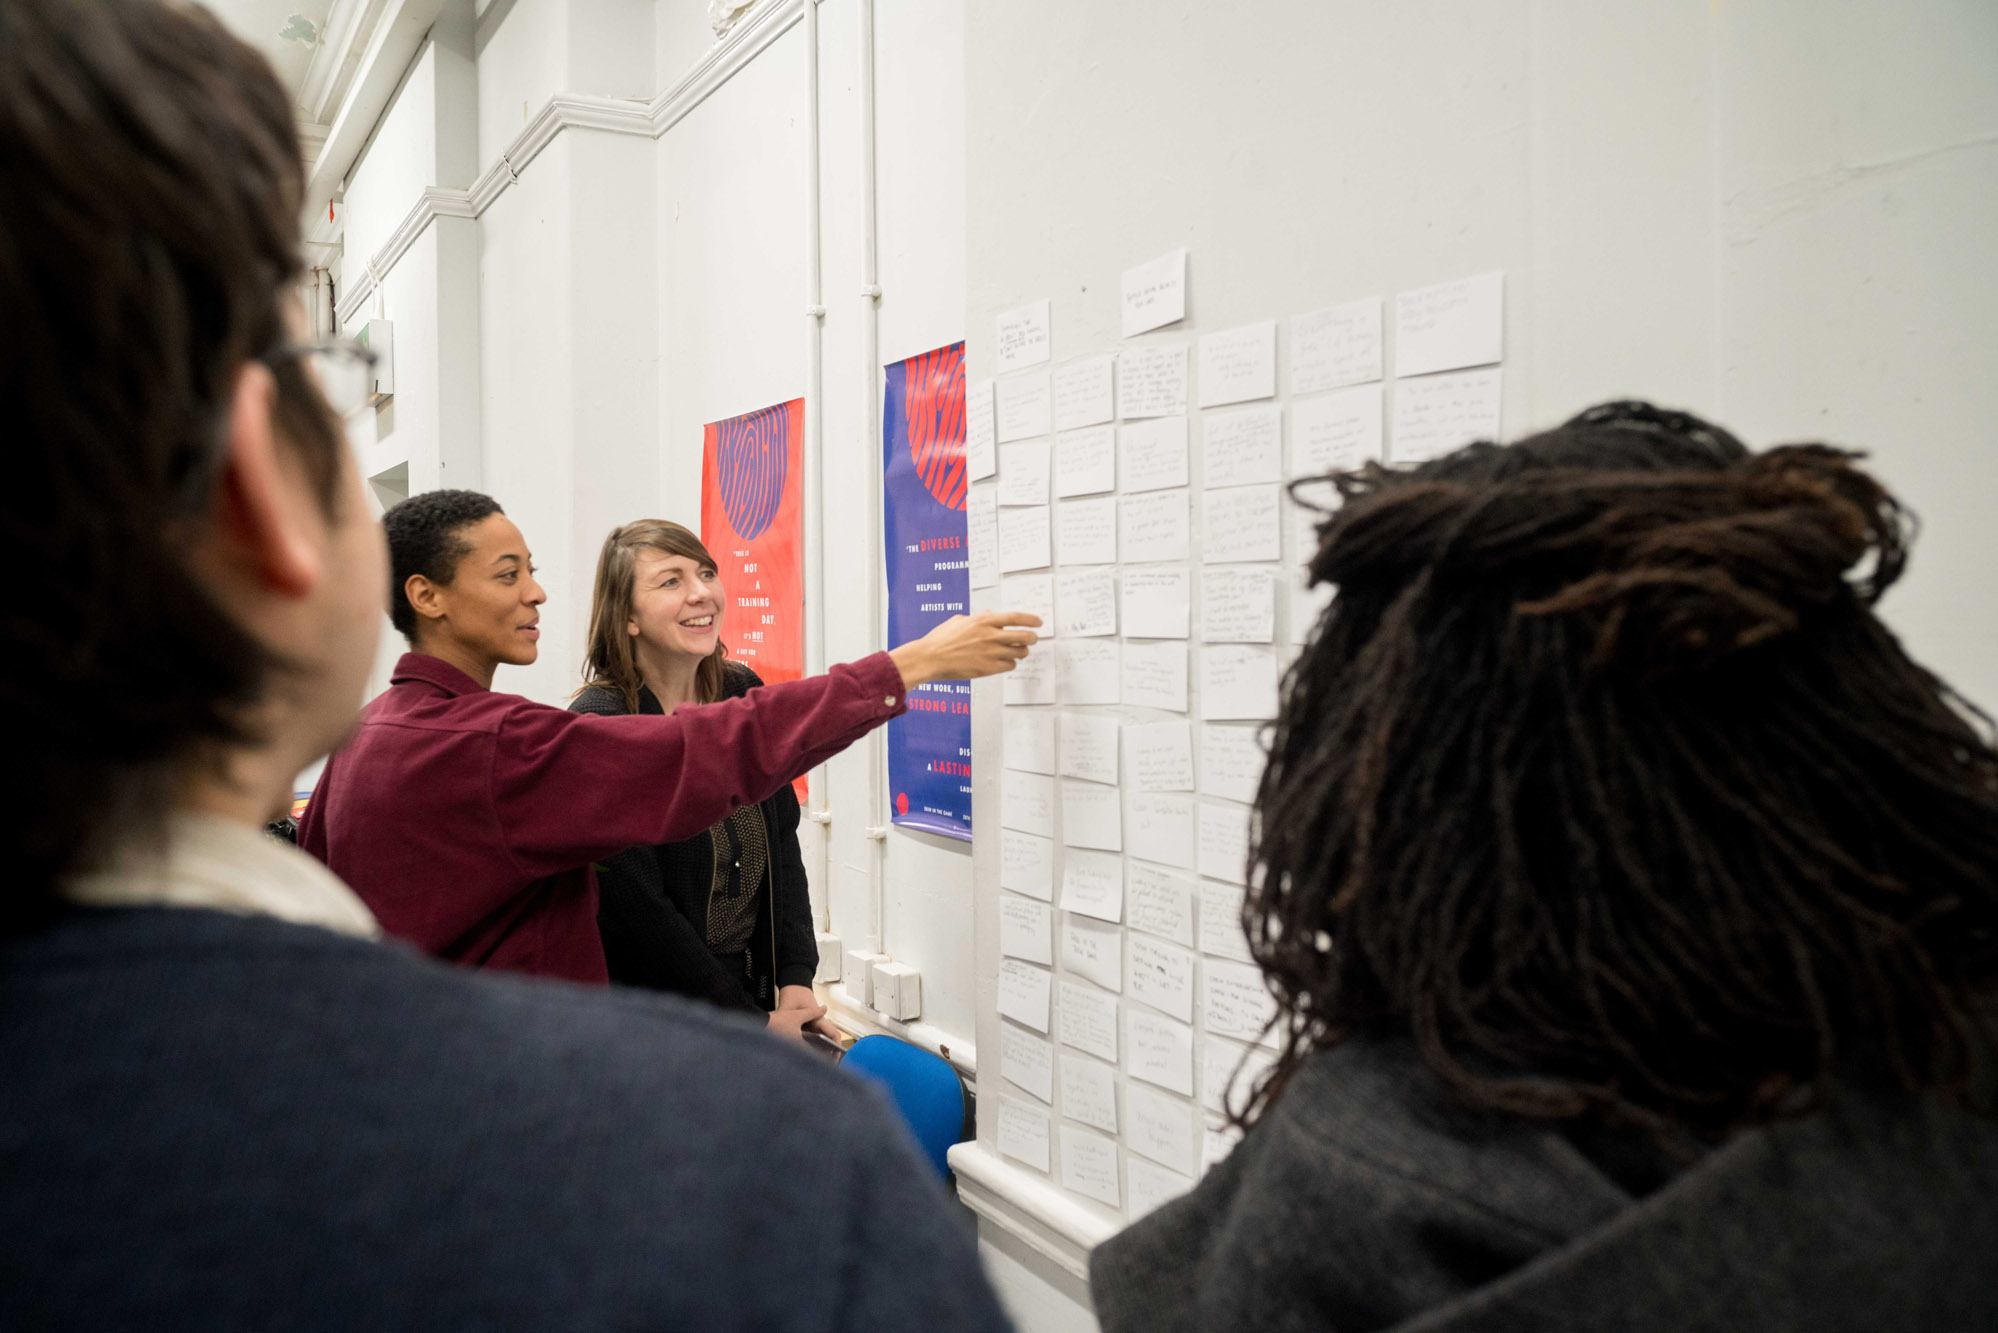 A group of participants look at notes on a wall.